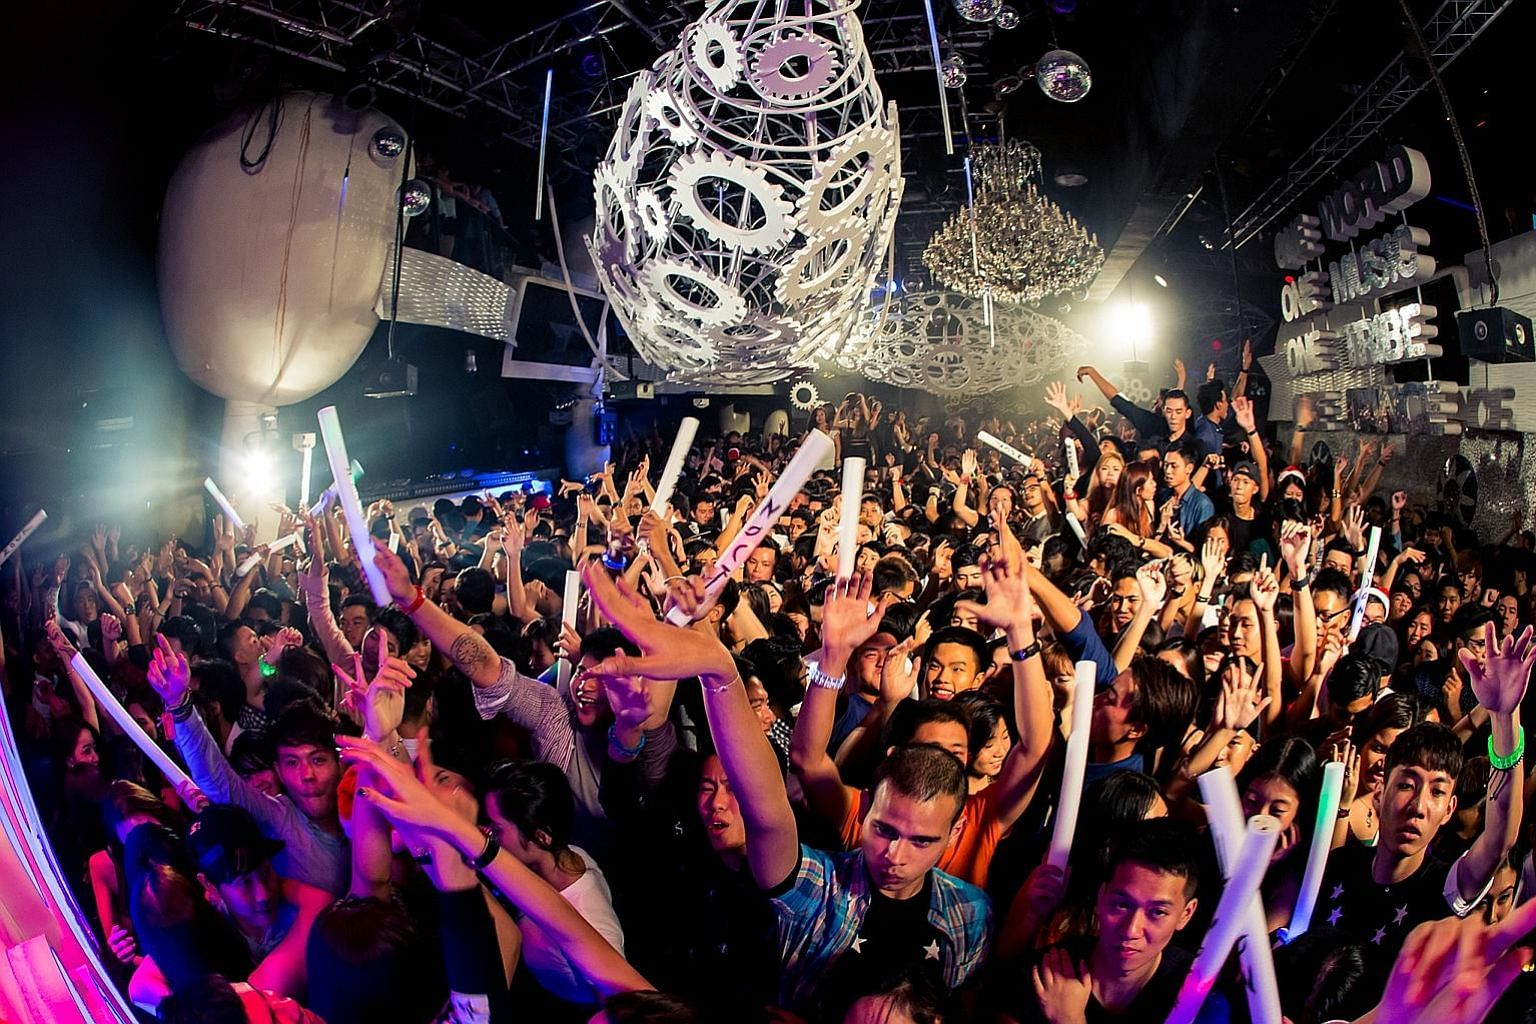 The crowd at Zouk Singapore's New Year's Eve party in 2014.